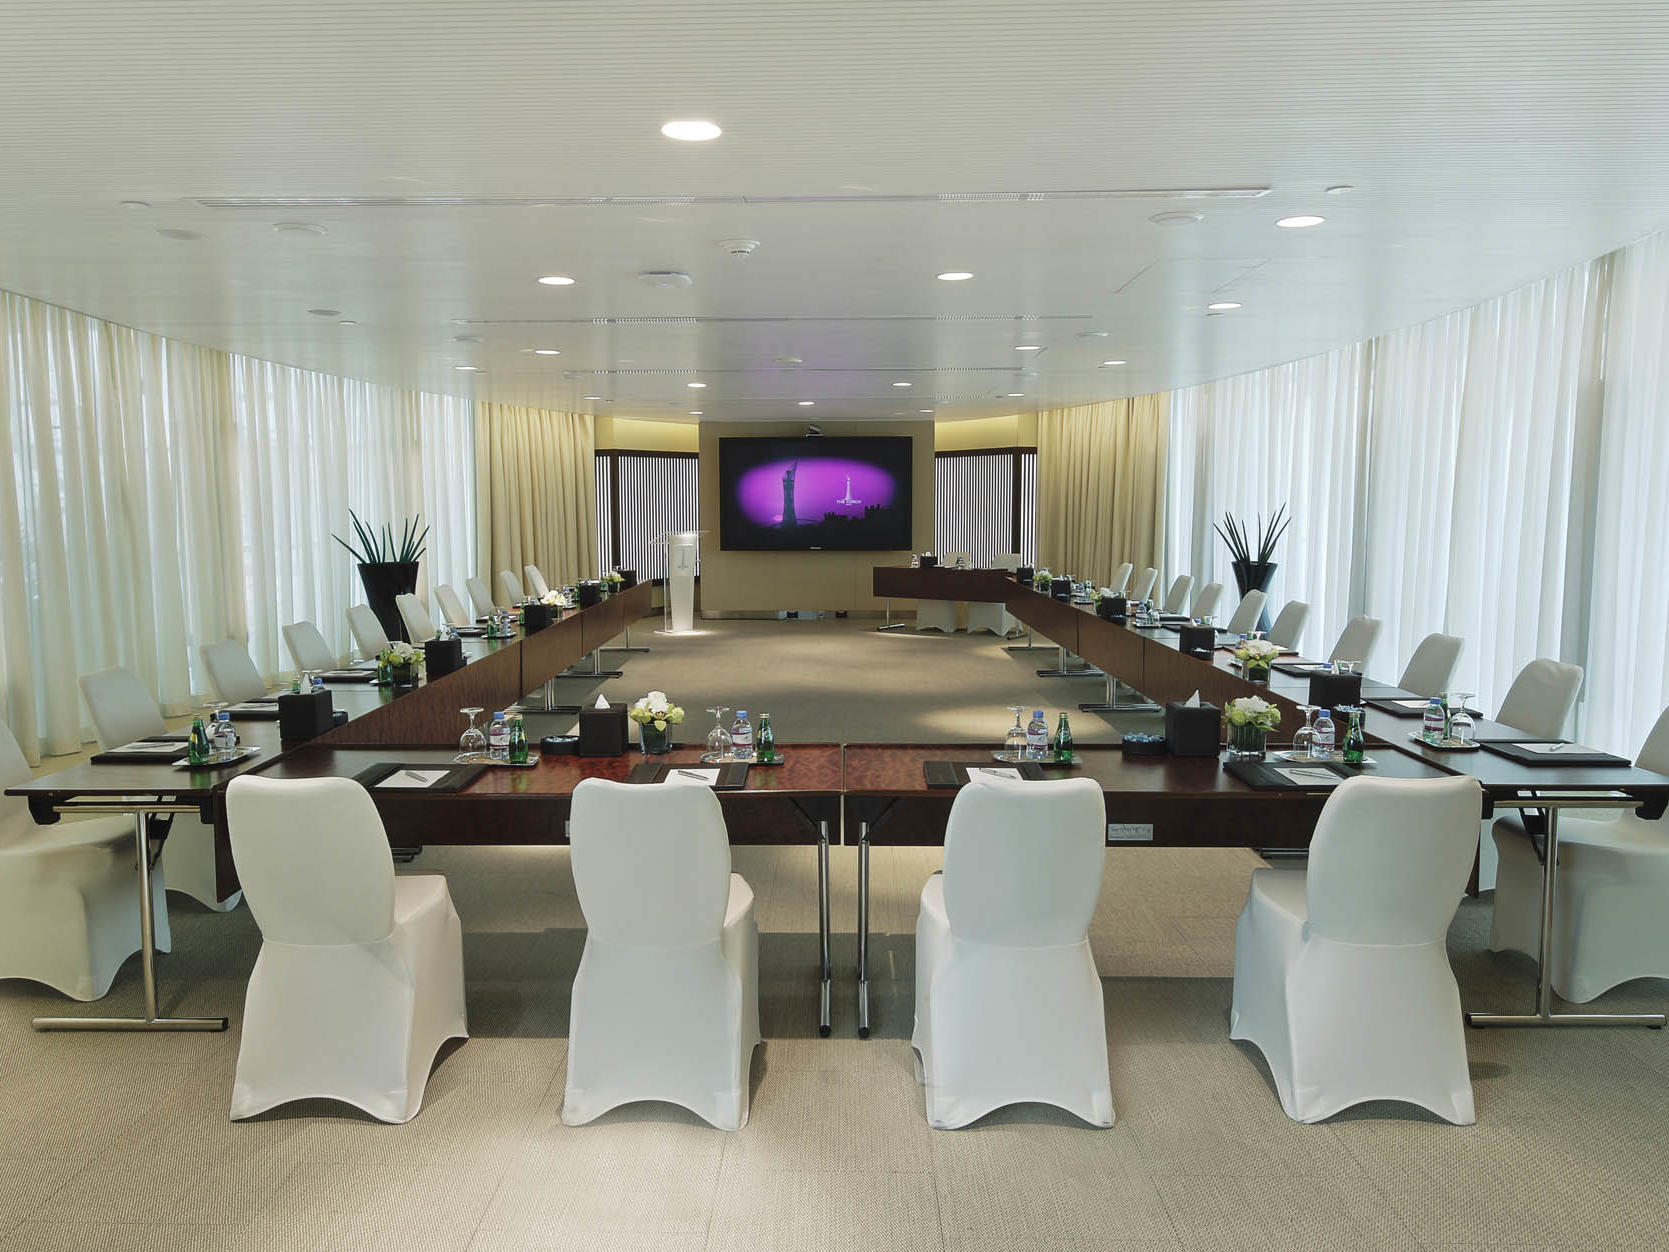 Meeting Room at The Torch Doha Hotel in Qatar